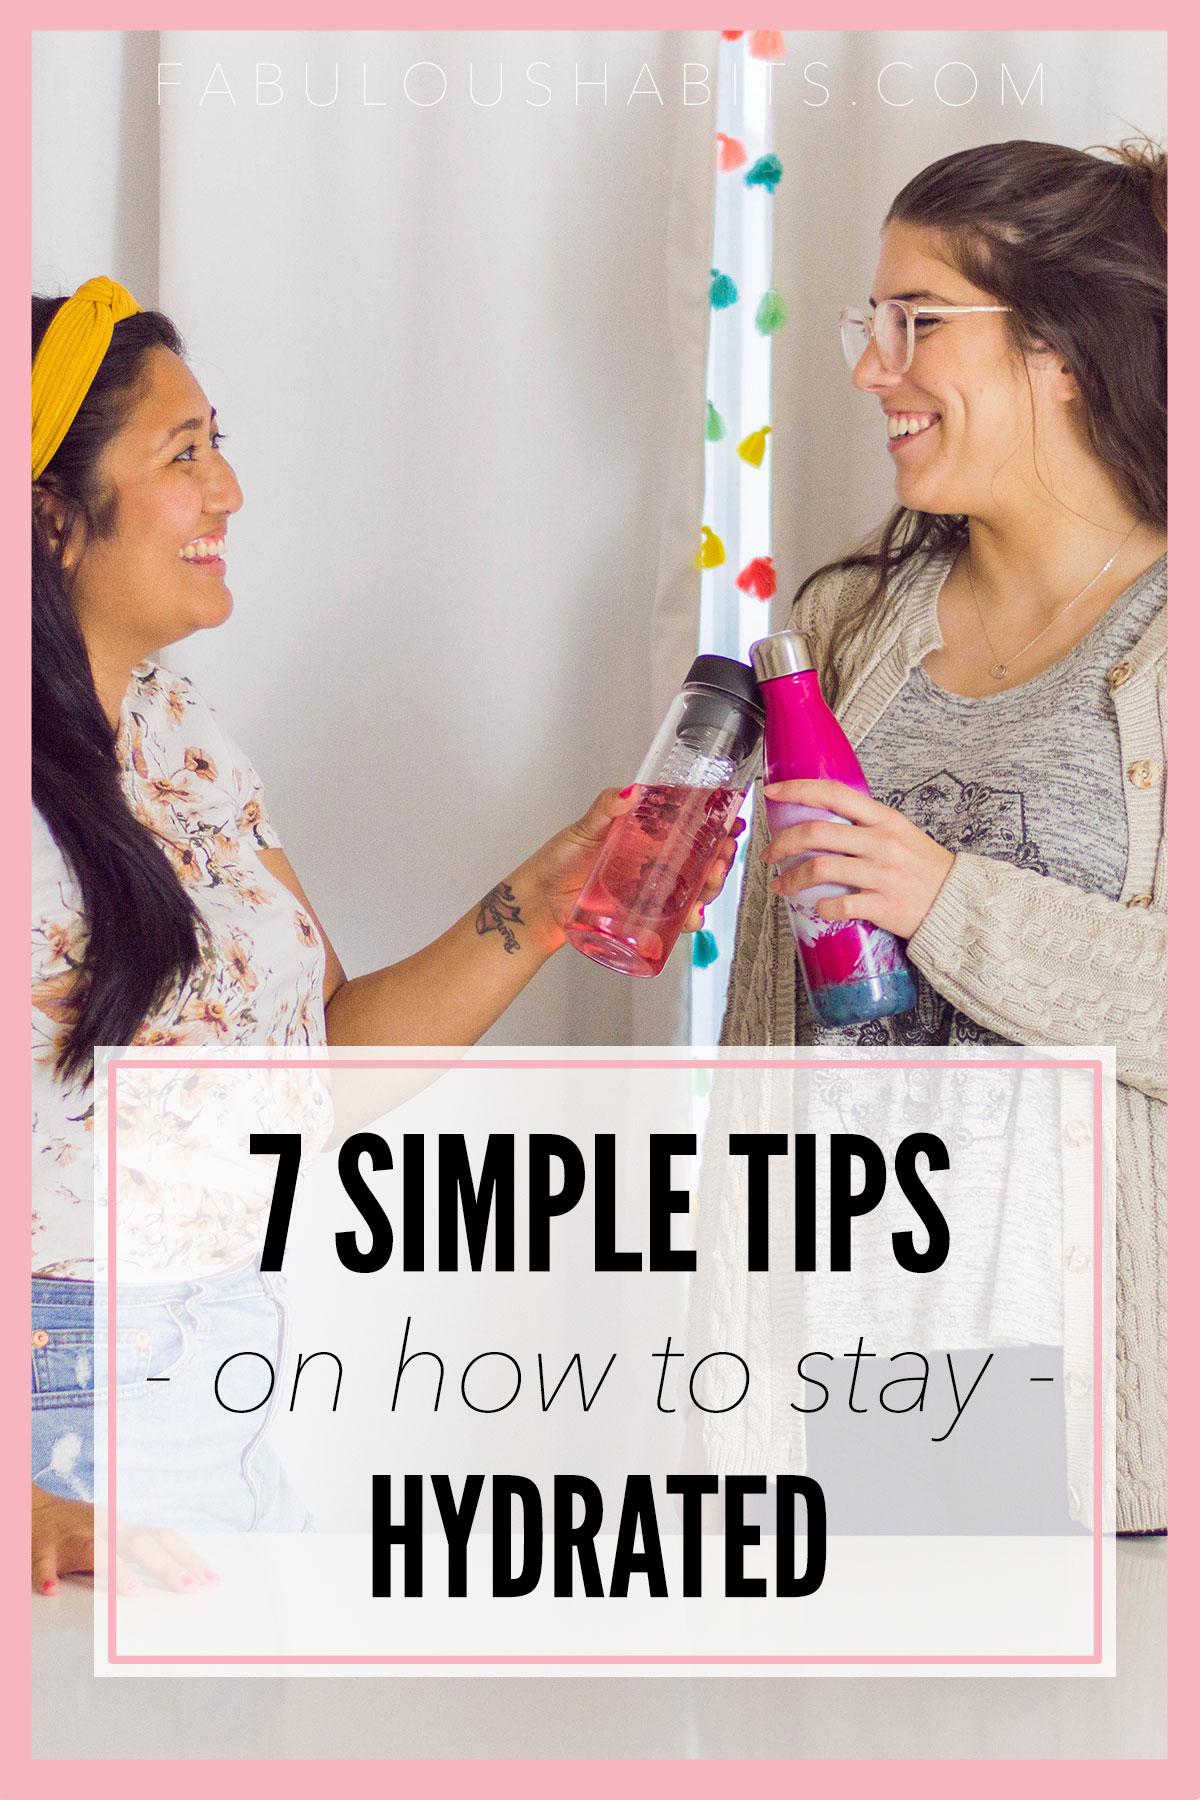 These 7 simple tips will help you stay hydrated - and it goes beyond drinking that glass of h20. We're excited to share all of our self-care tips!